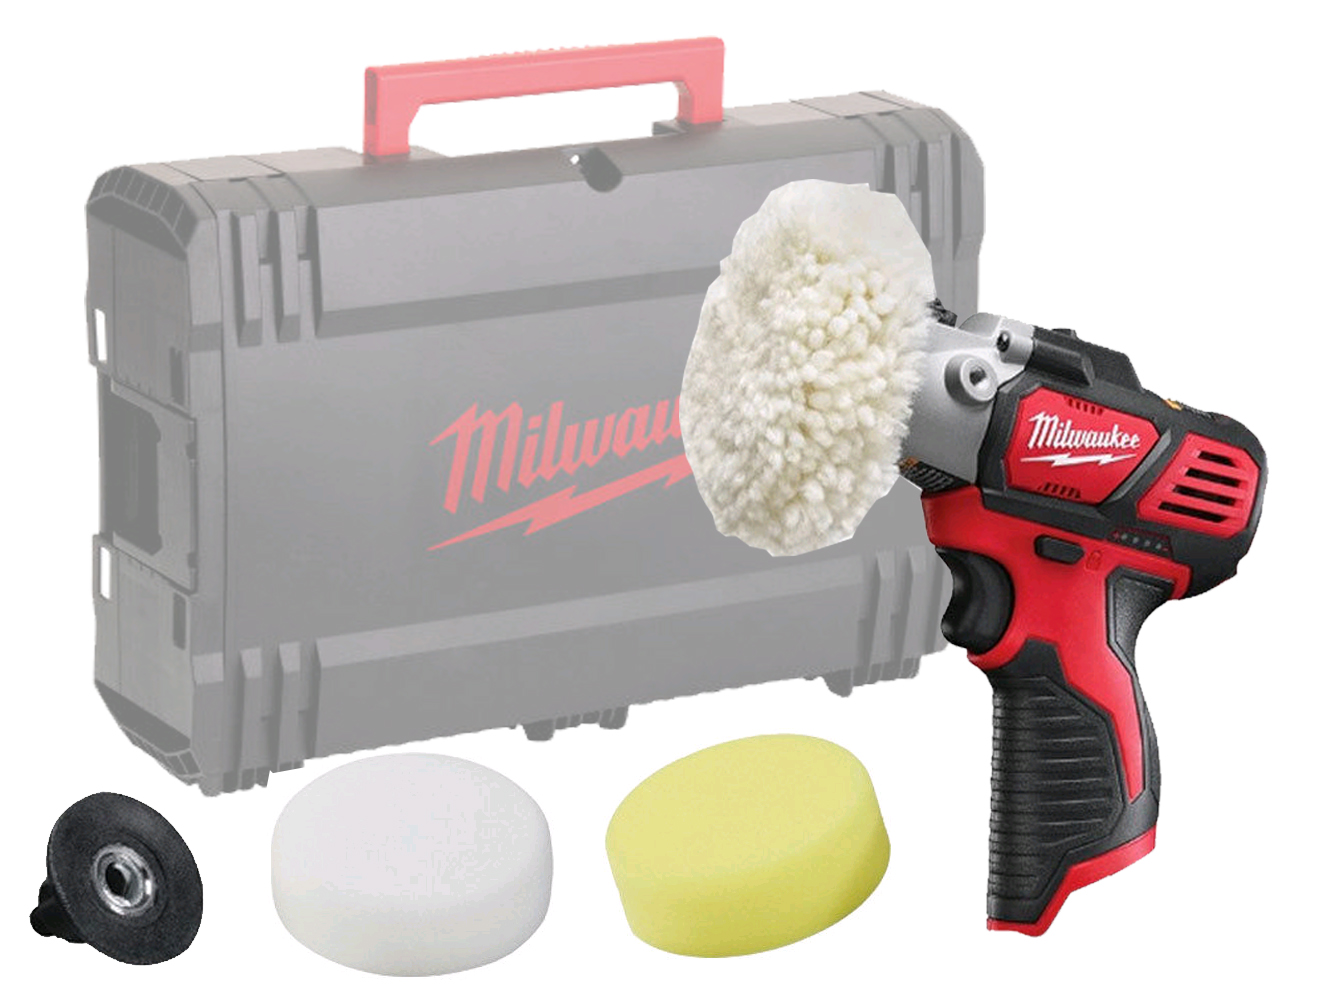 Milwaukee M12BPS 12V Polisher / Sander - Sub Compact - Body Only 4933447791